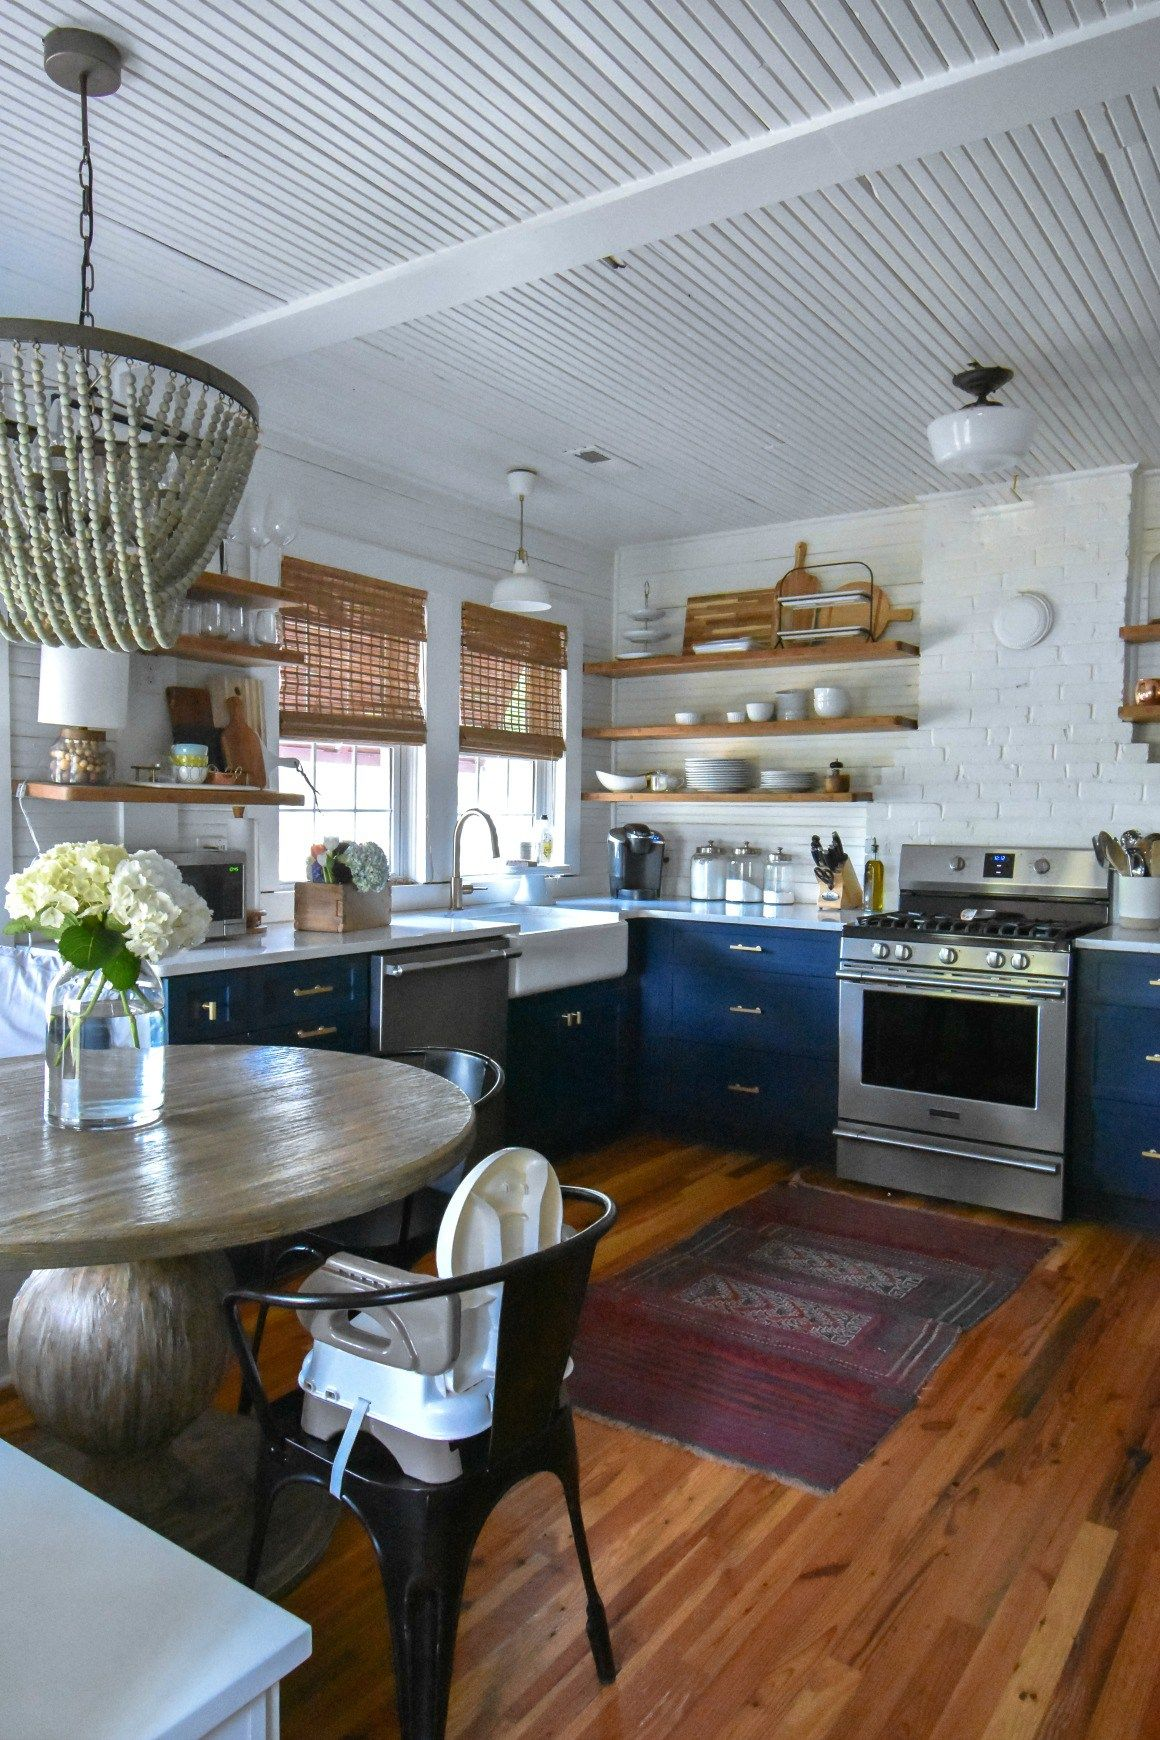 Small Space Living Mini Series- Kitchen Edition | Mud rooms, Laundry ...